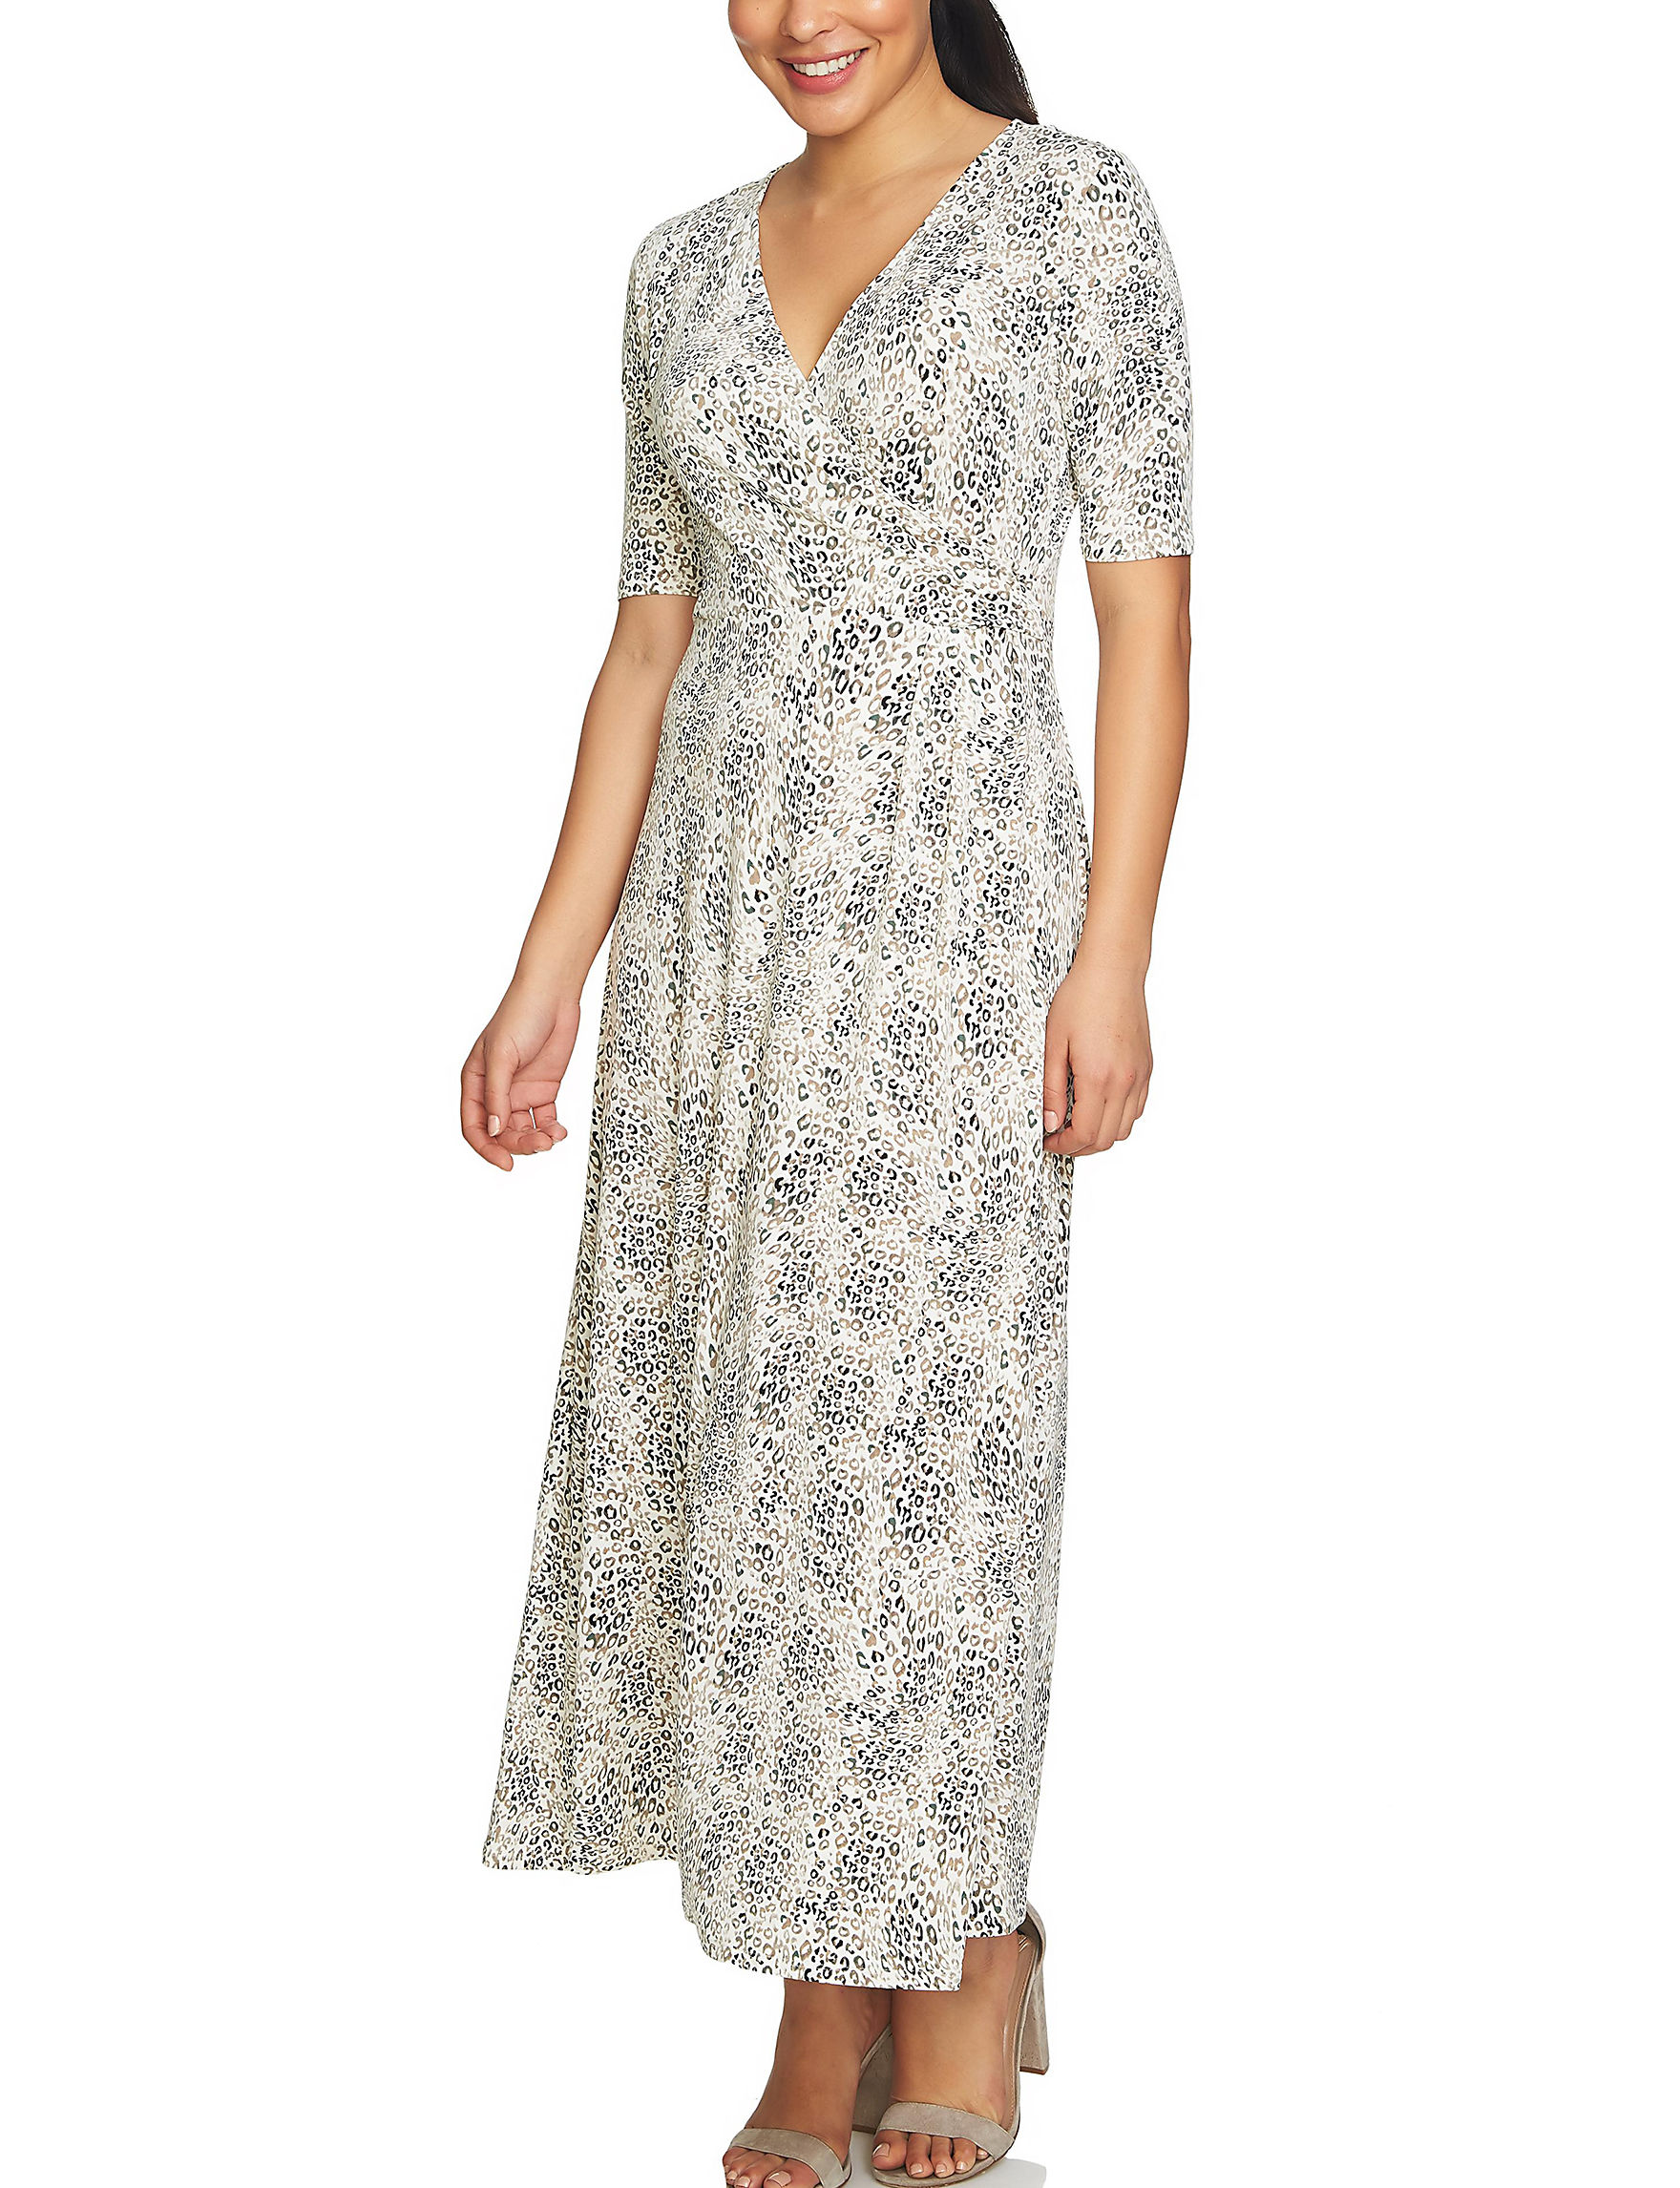 Chaus White / Multi Everyday & Casual Fit & Flare Dresses Sundresses